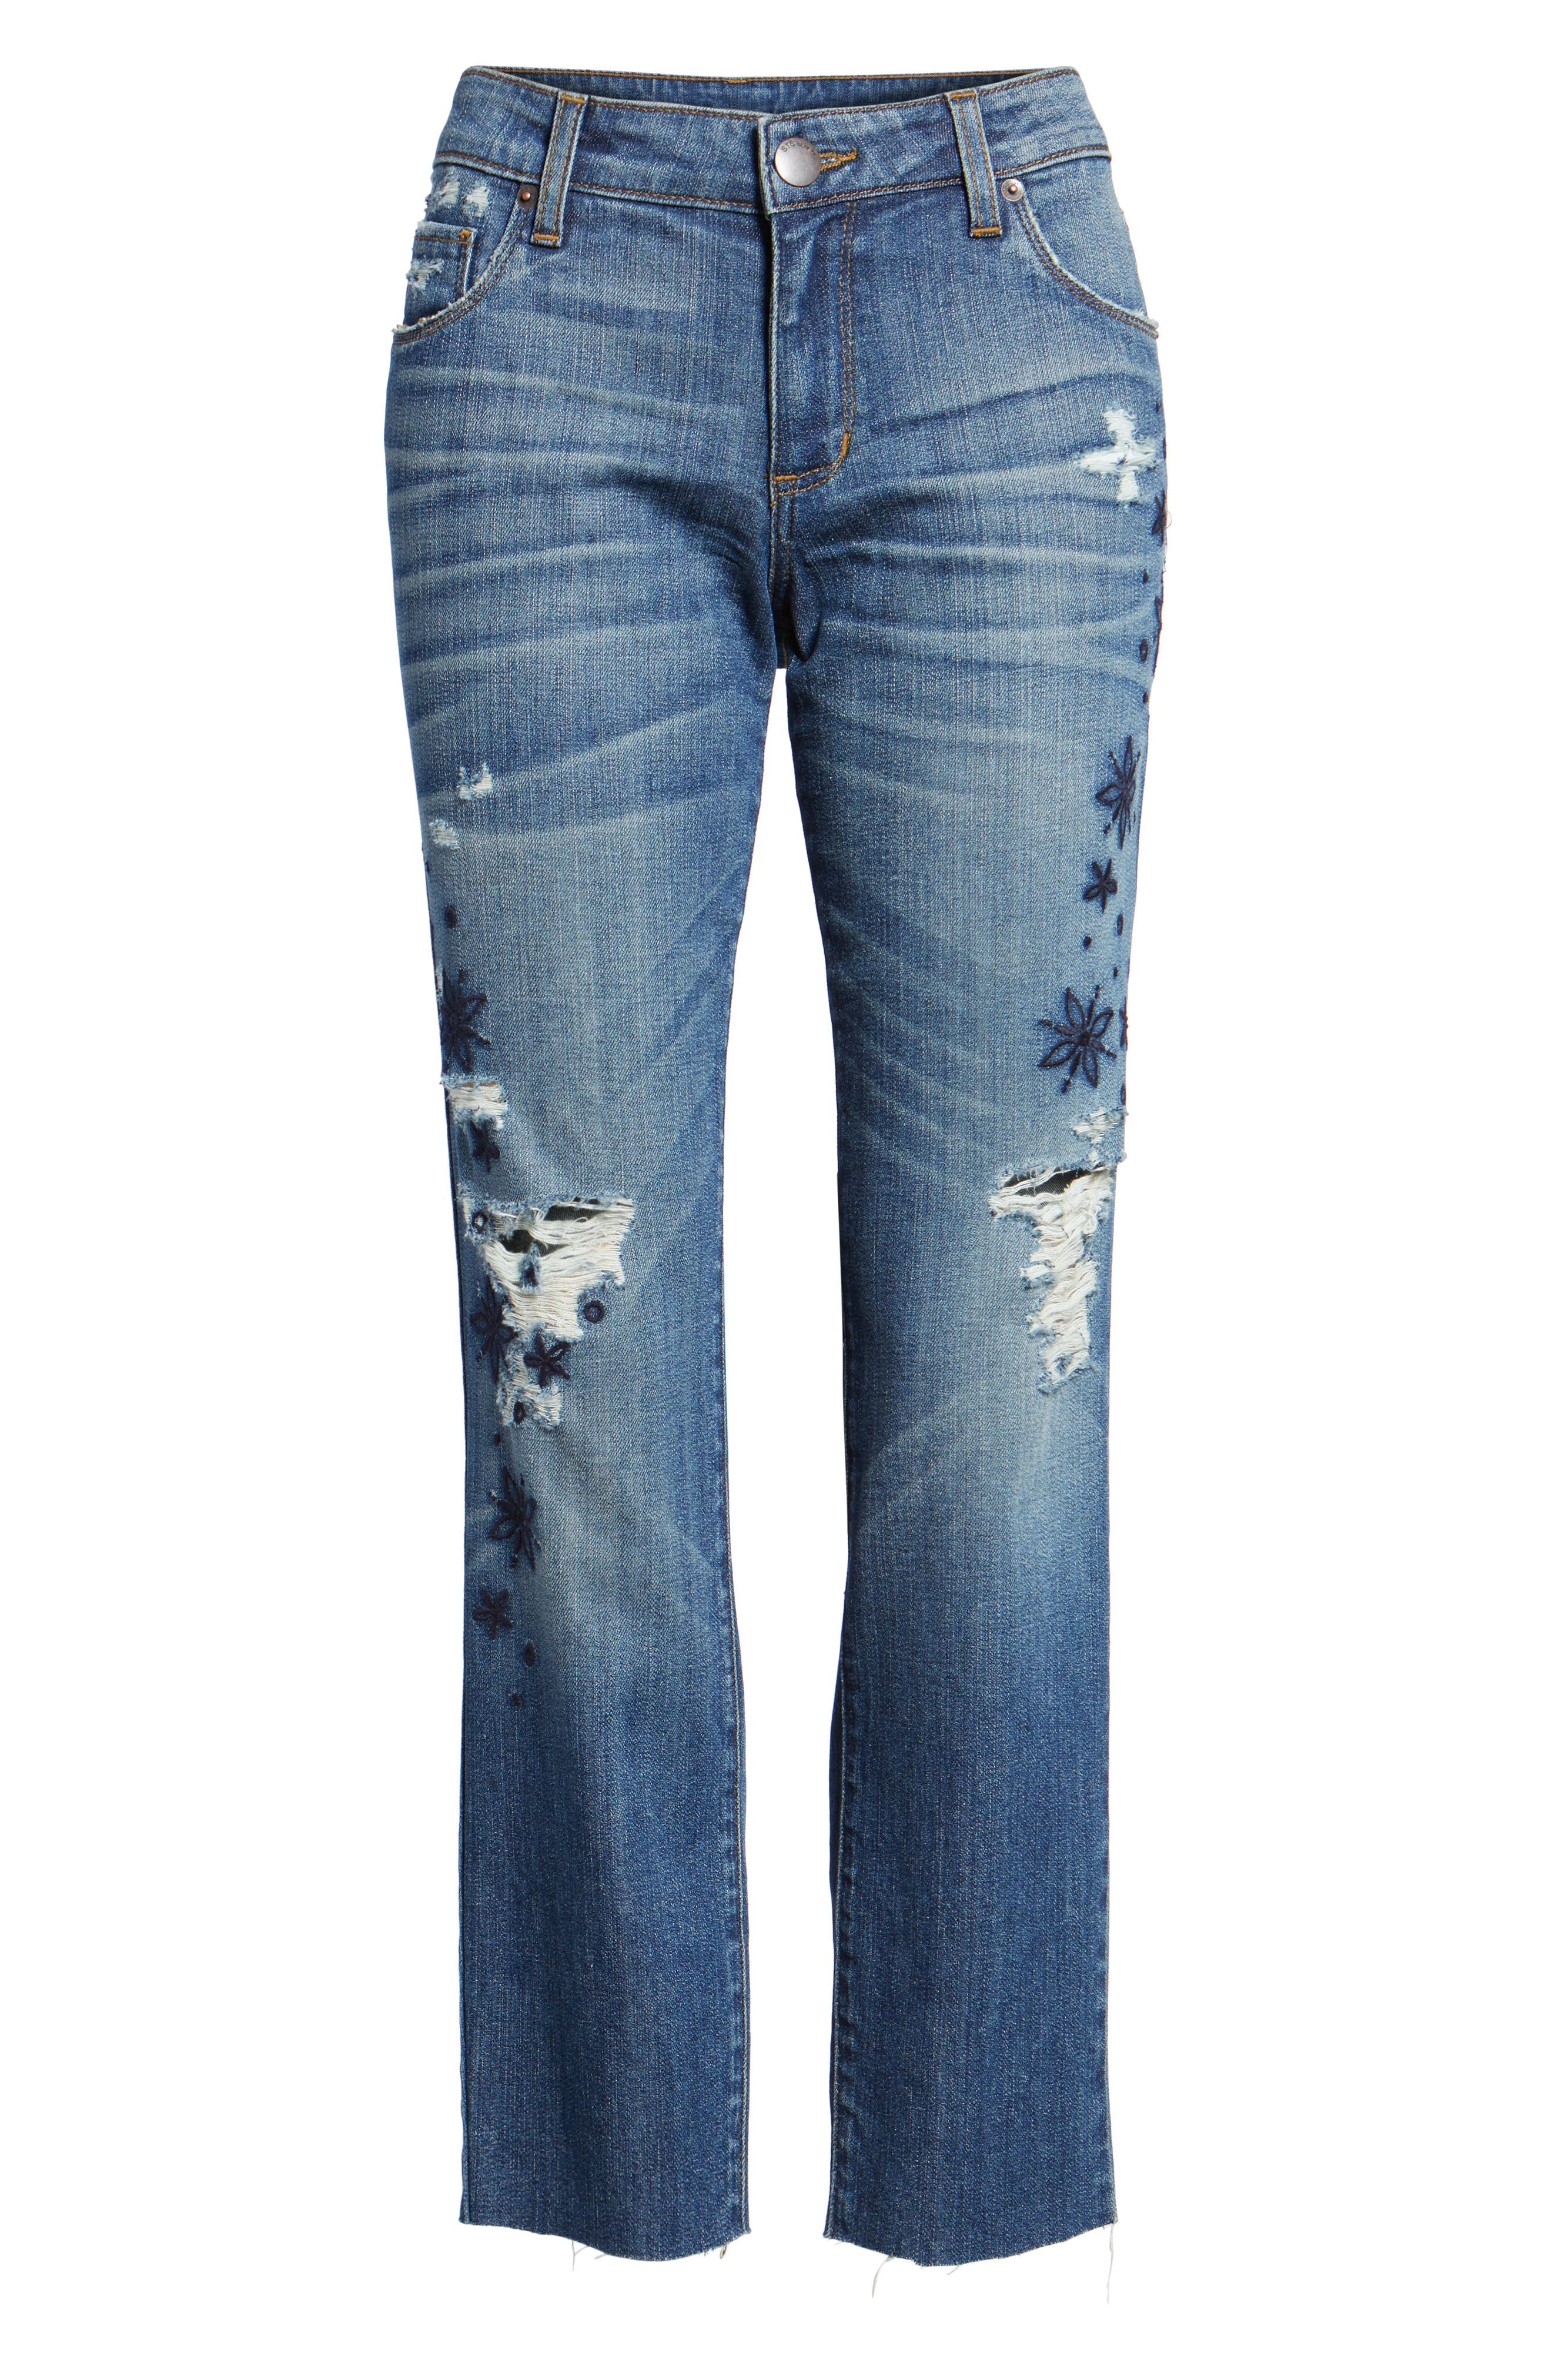 Taylor Ripped Embroidered Straight Leg Jeans,                             Alternate thumbnail 6, color,                             400